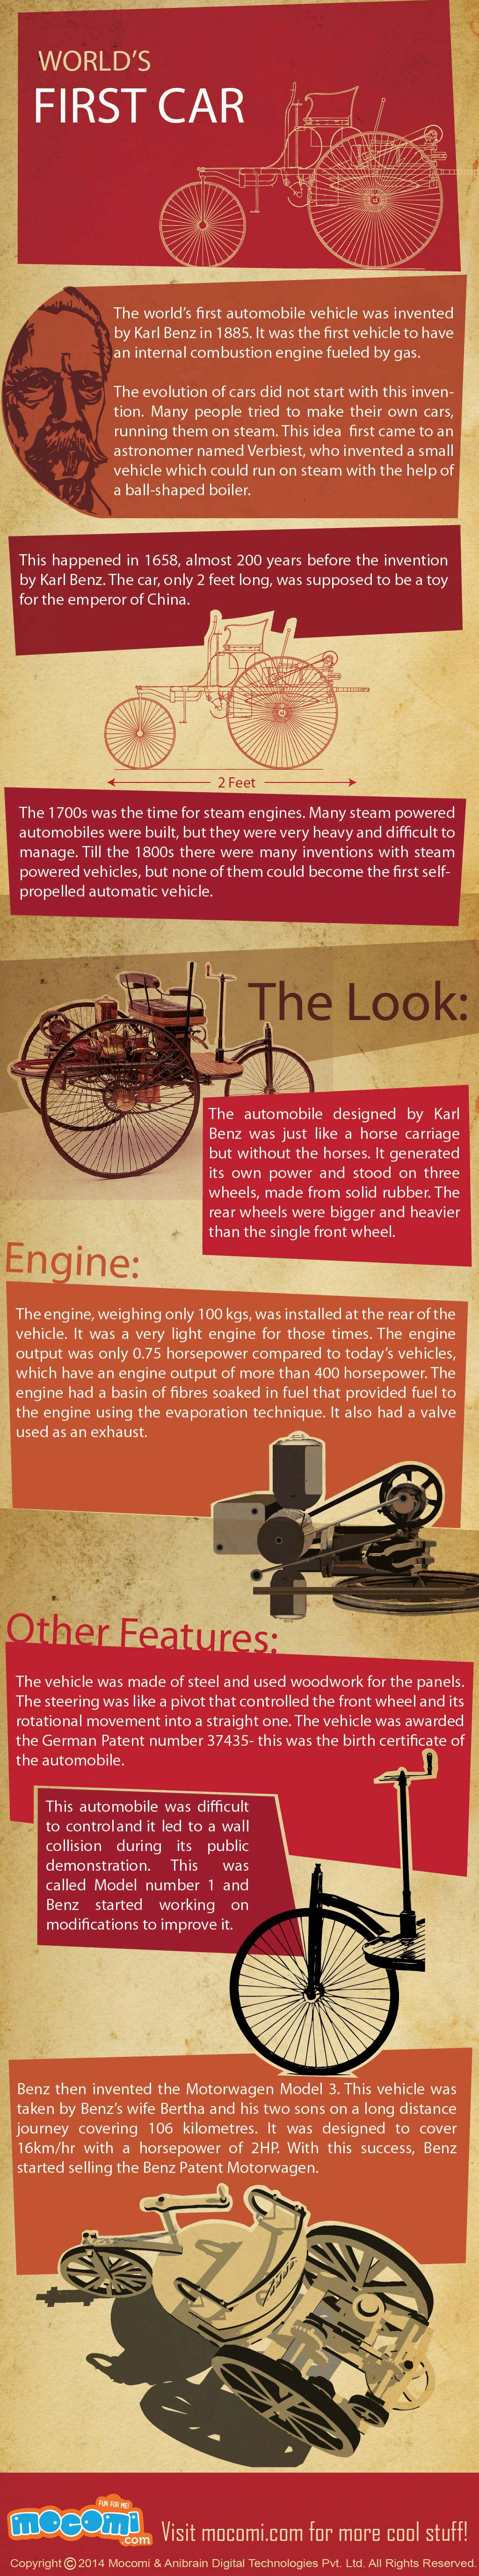 First Car in the World - General Knowledge for Kids | Combustion engine